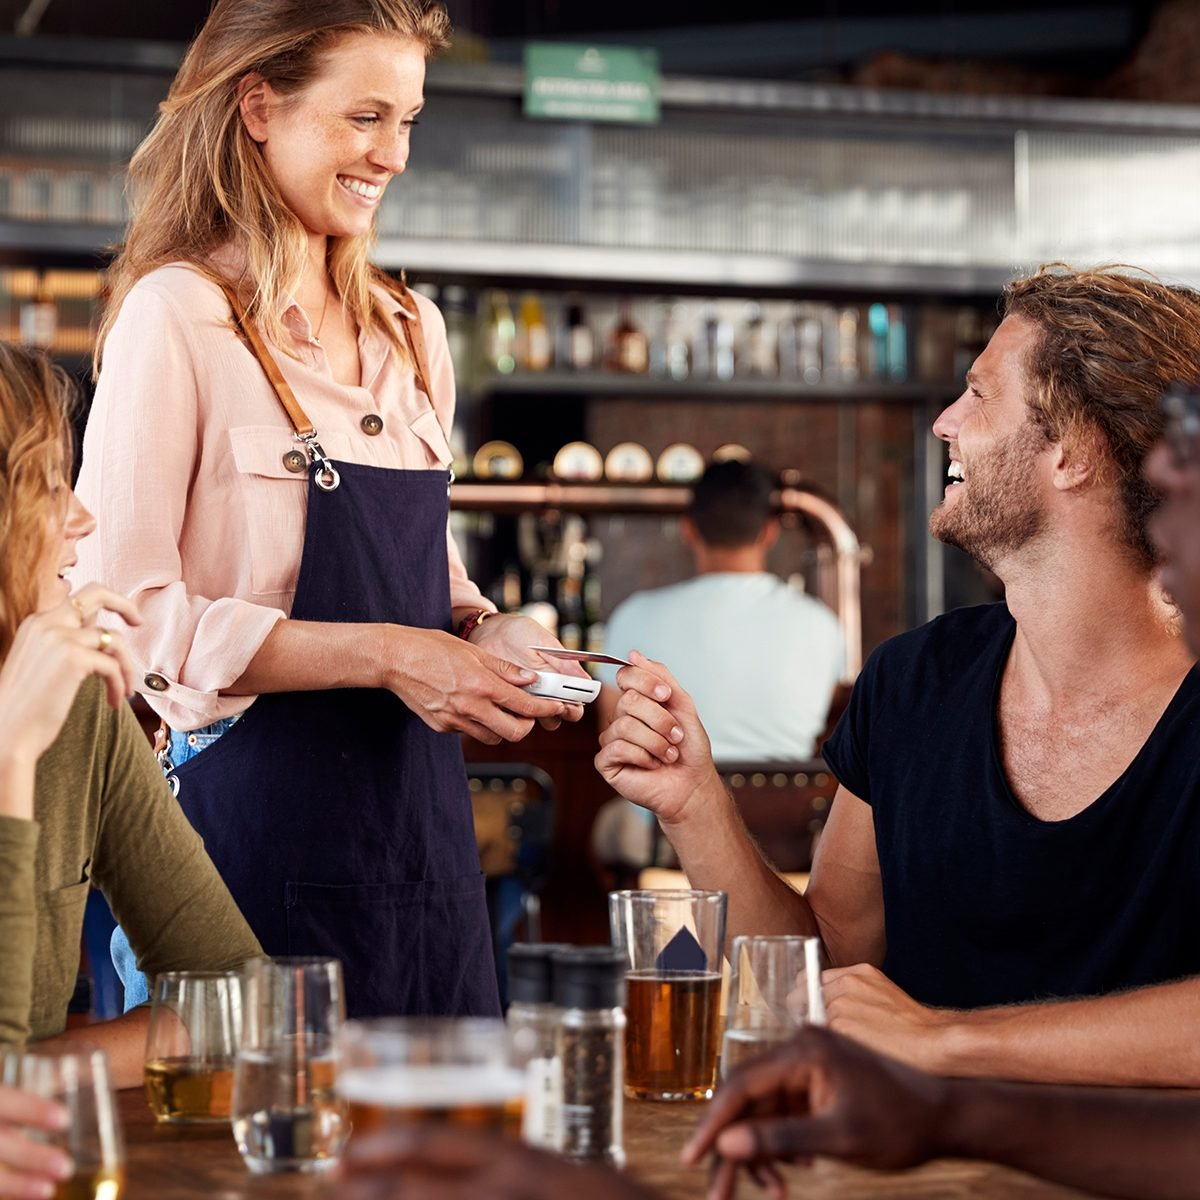 Waitress Holds Credit Card Machine As Customer Pays Bill In Bar Restaurant